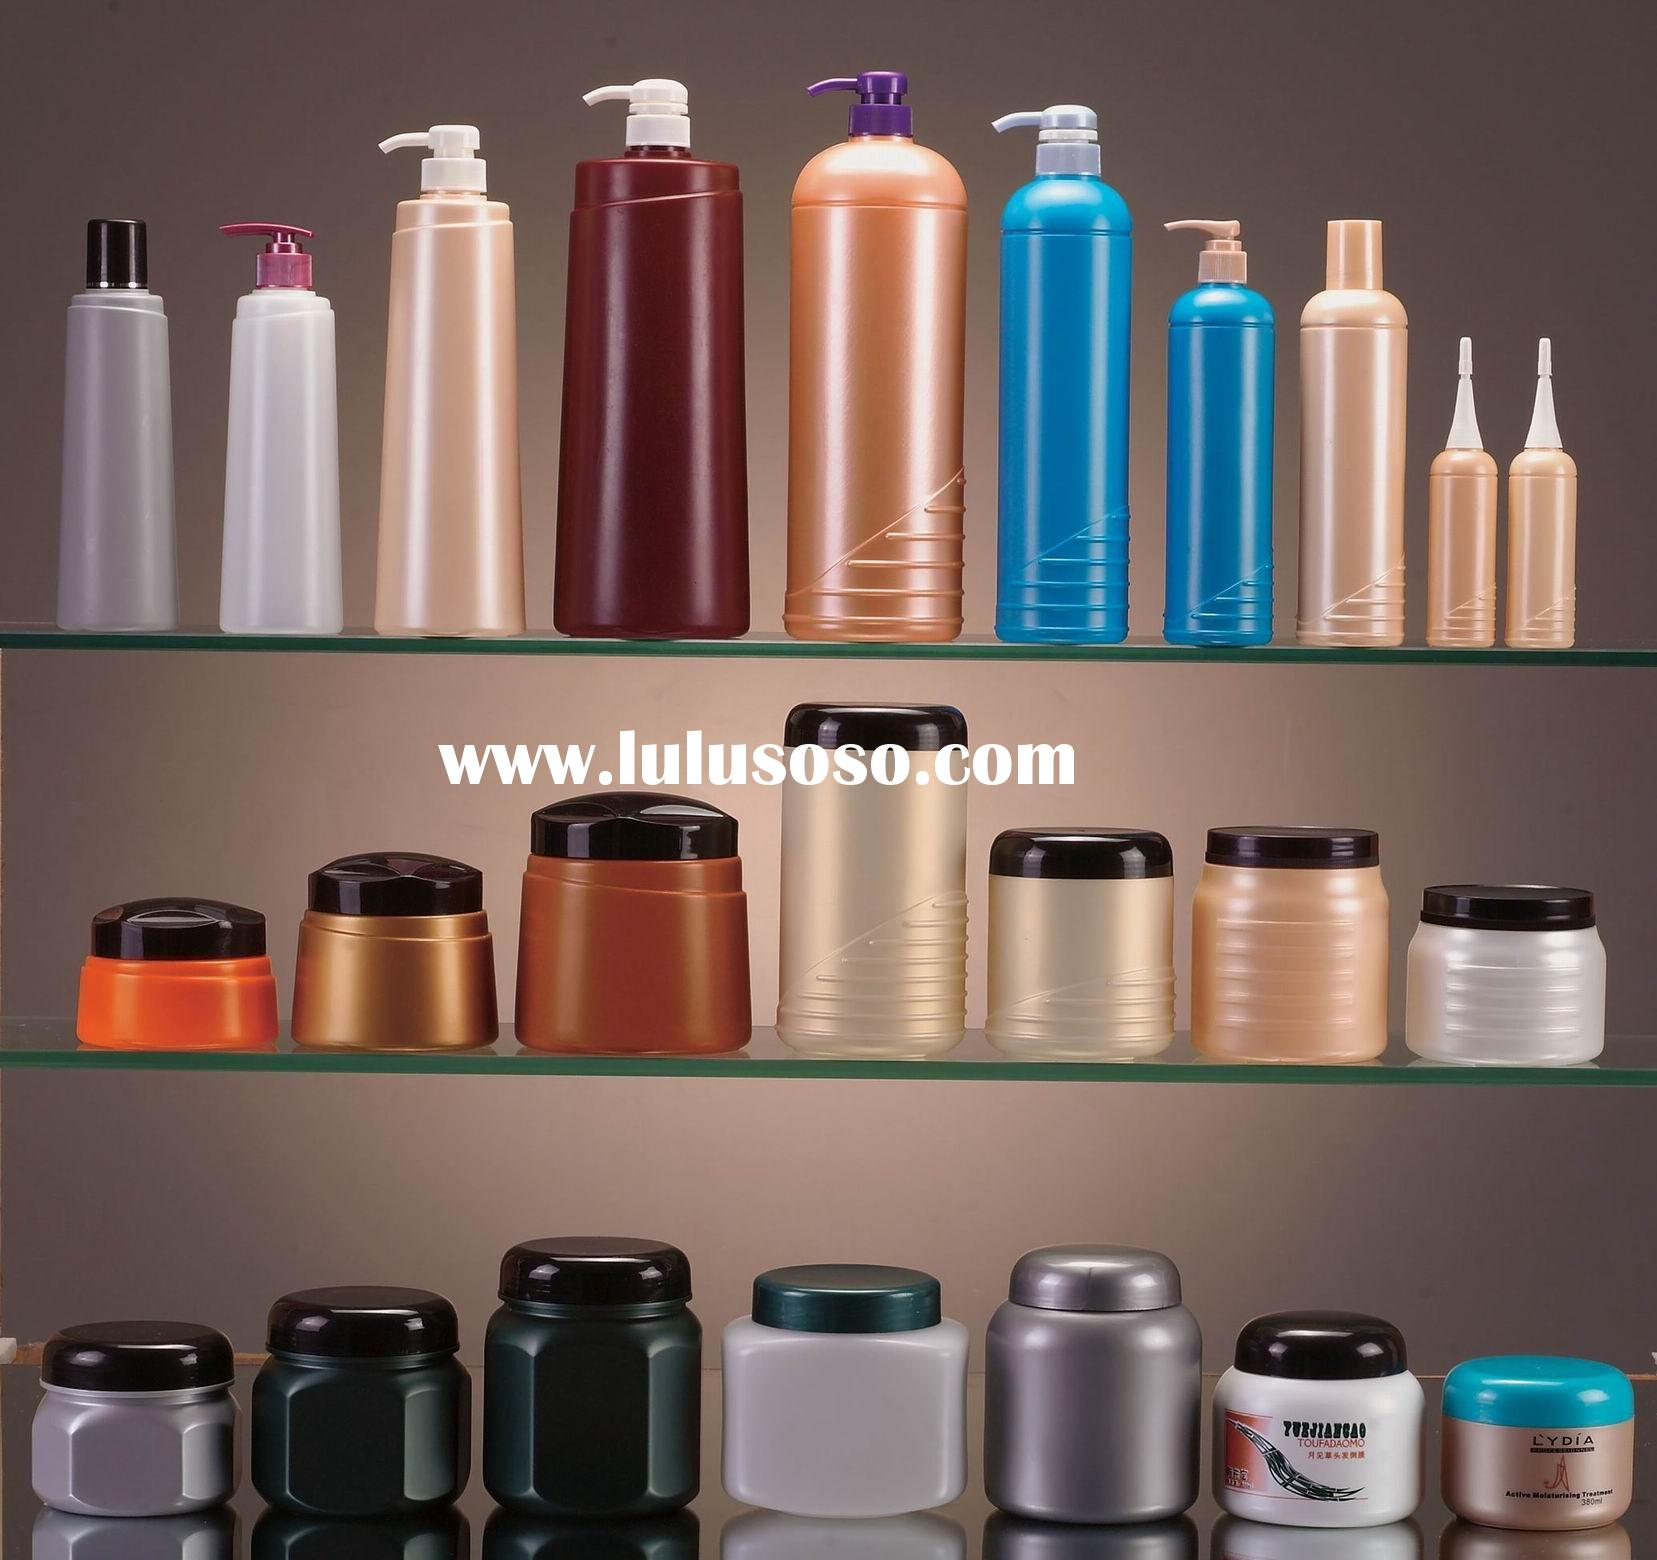 shampoo / hair / body lotion / cosmetic plastic bottle